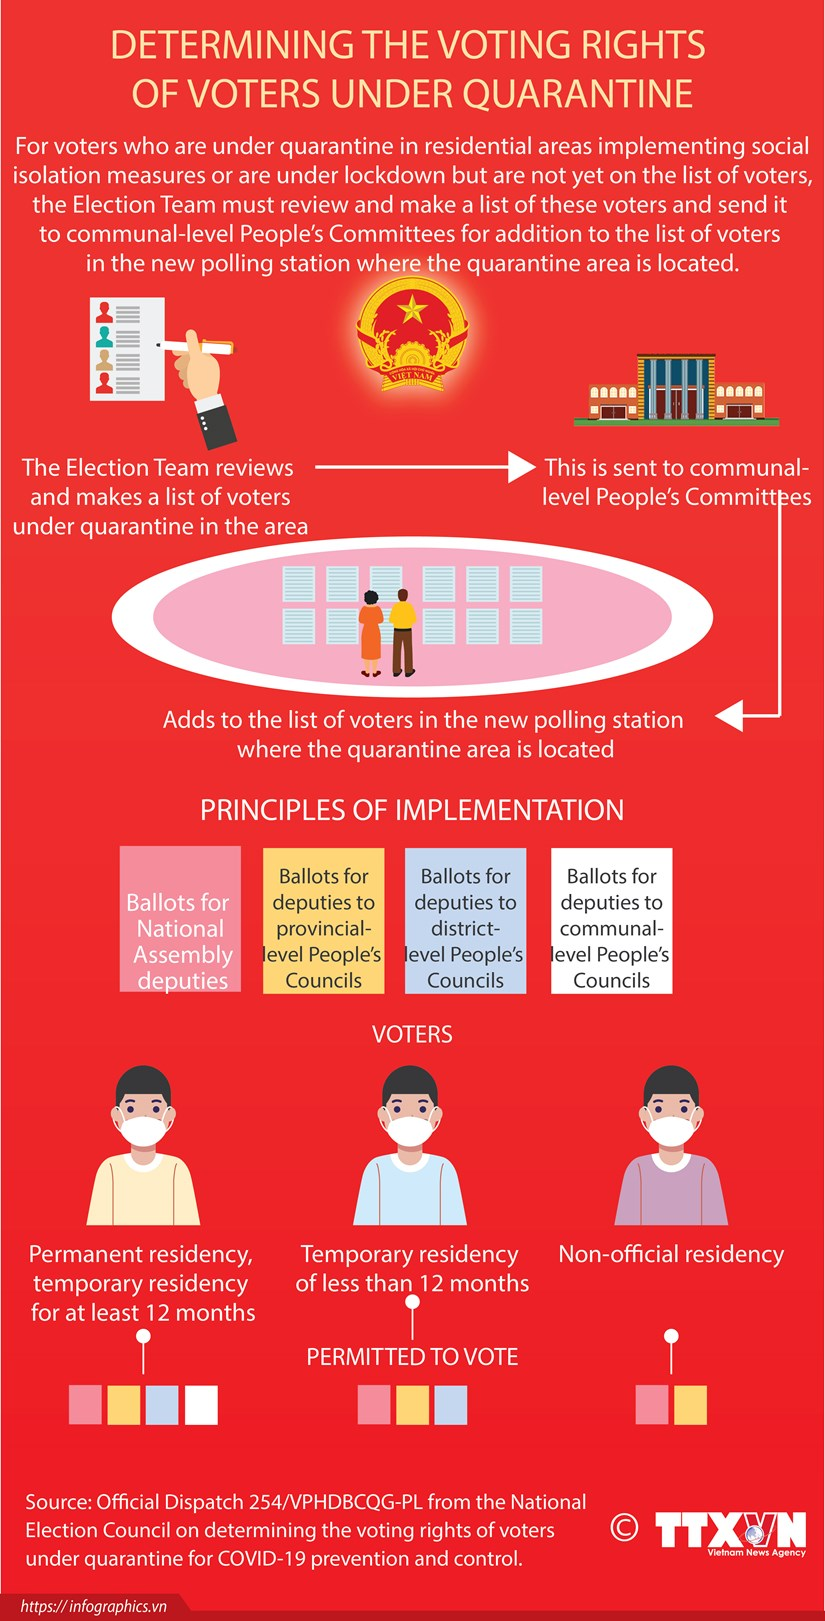 Determining the voting rights of voters under quarantine hinh anh 1